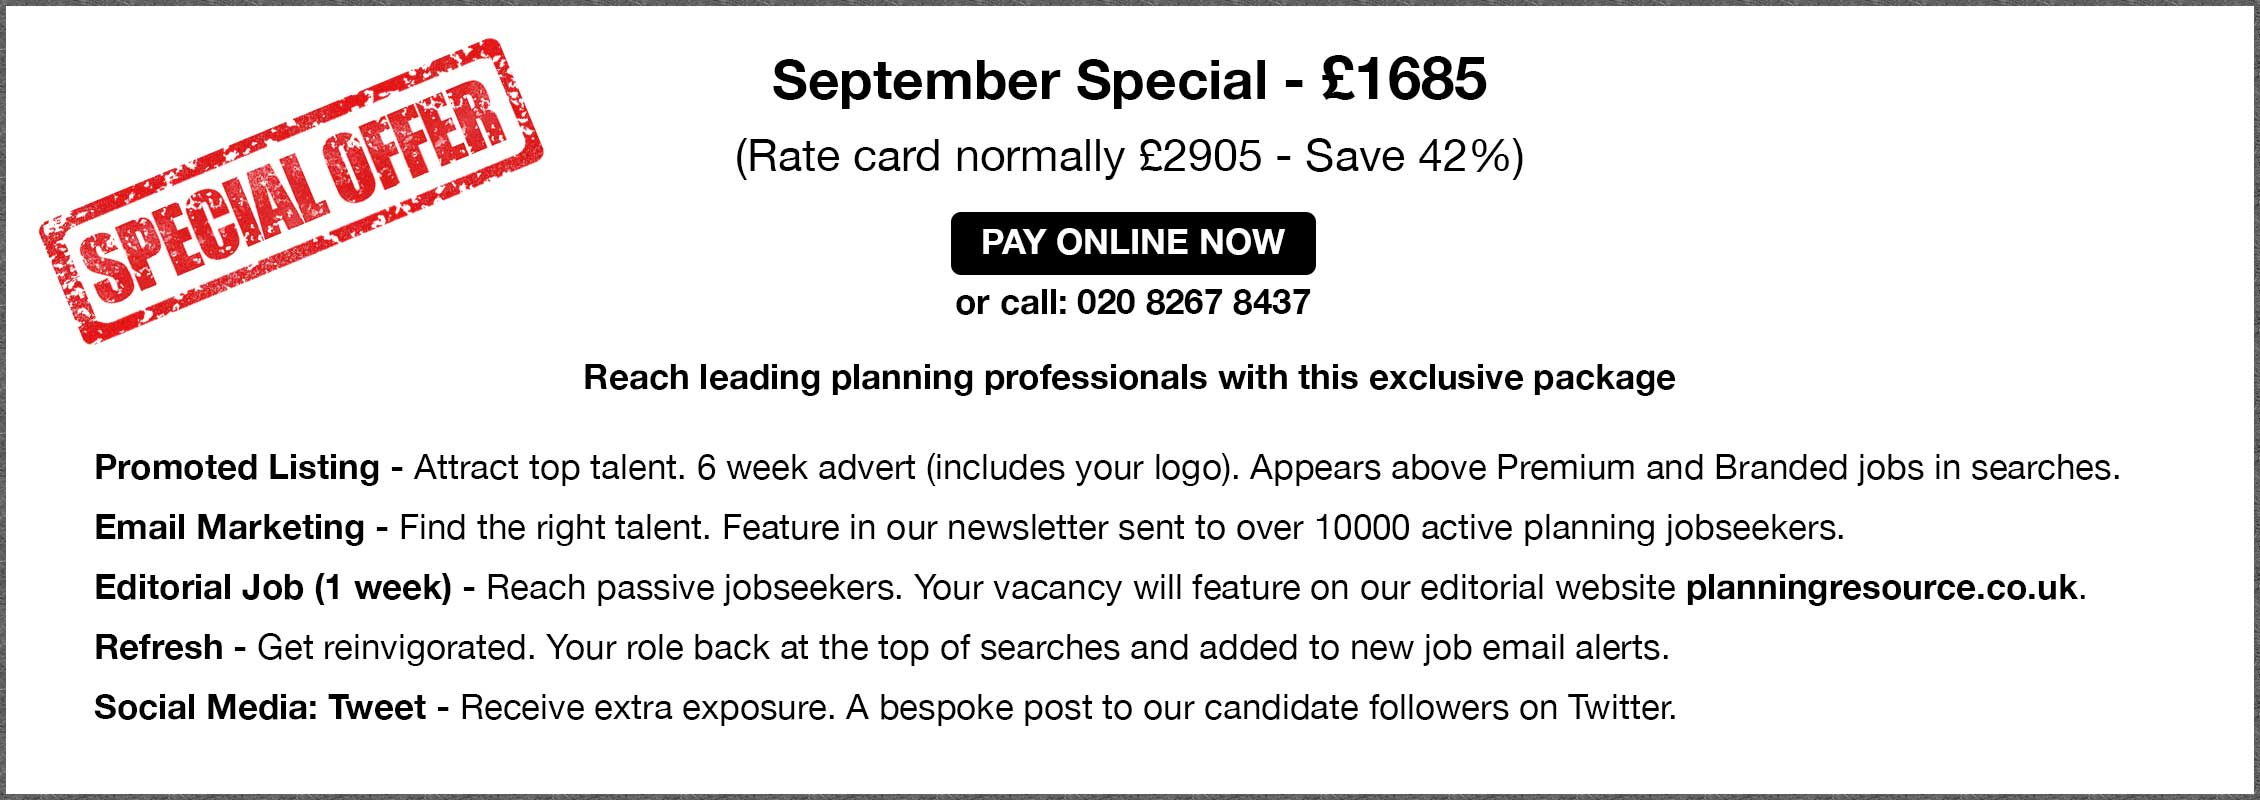 September Special - £1685.